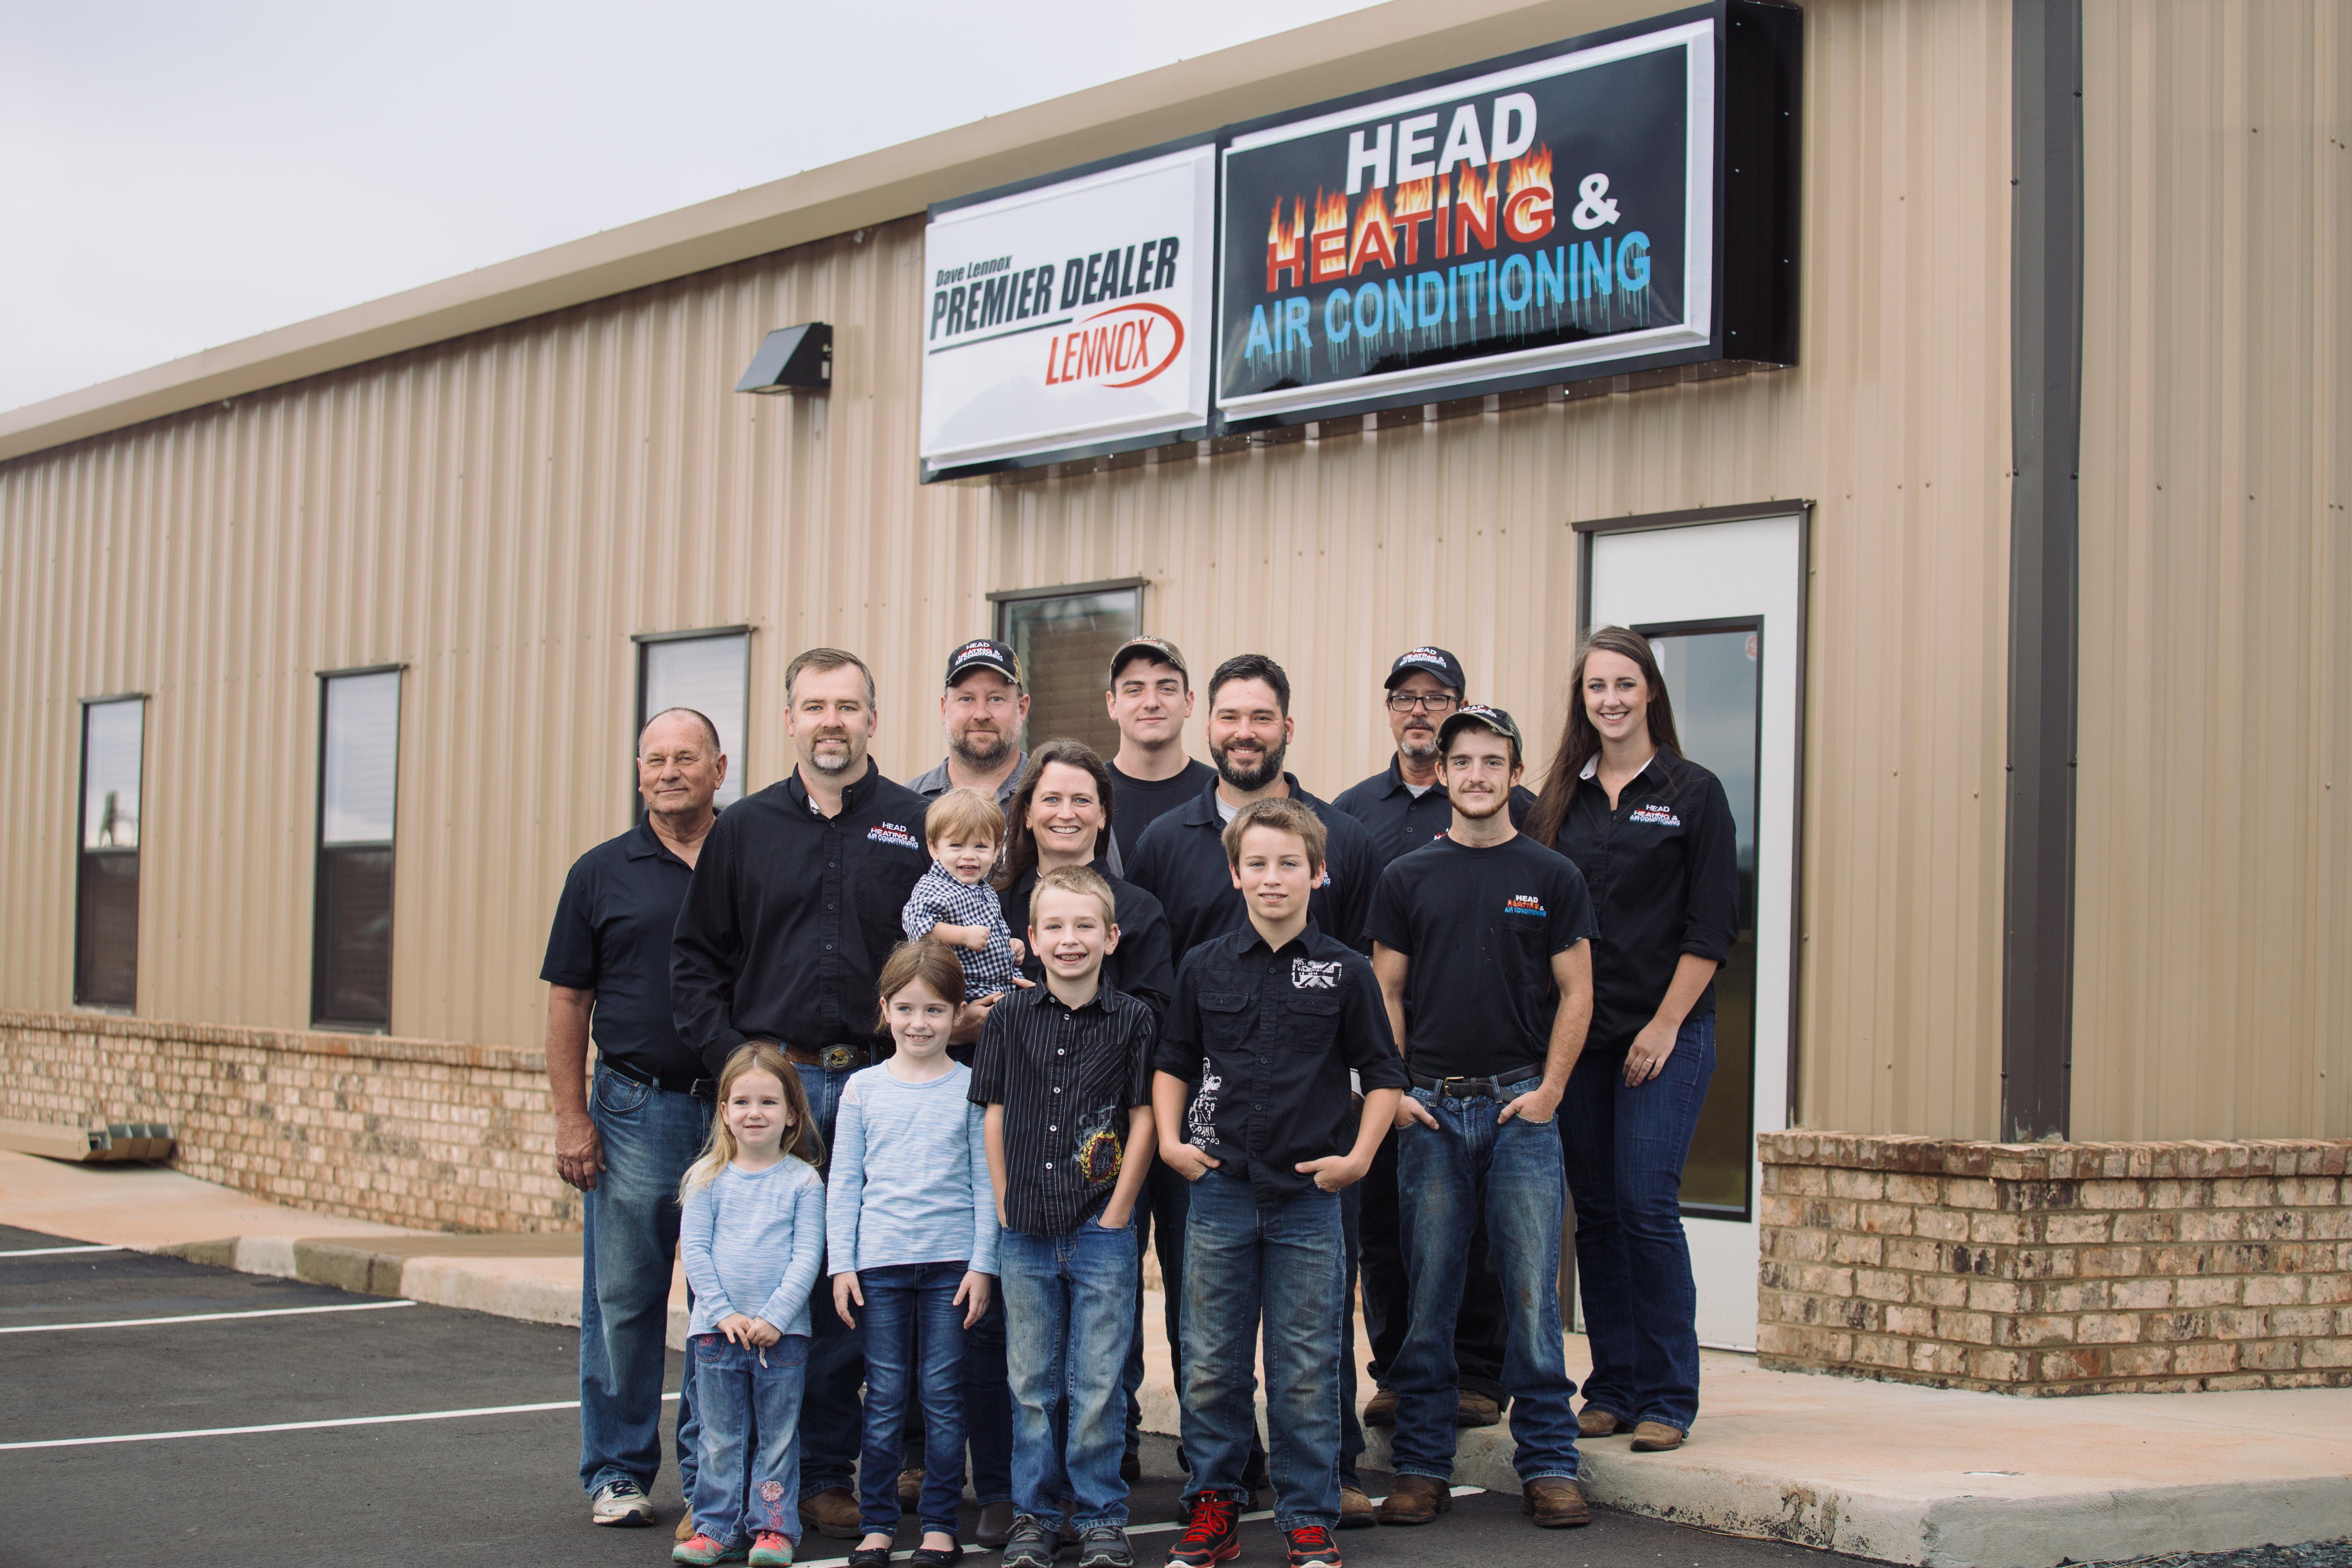 Head Heating & Air Conditioning image 0